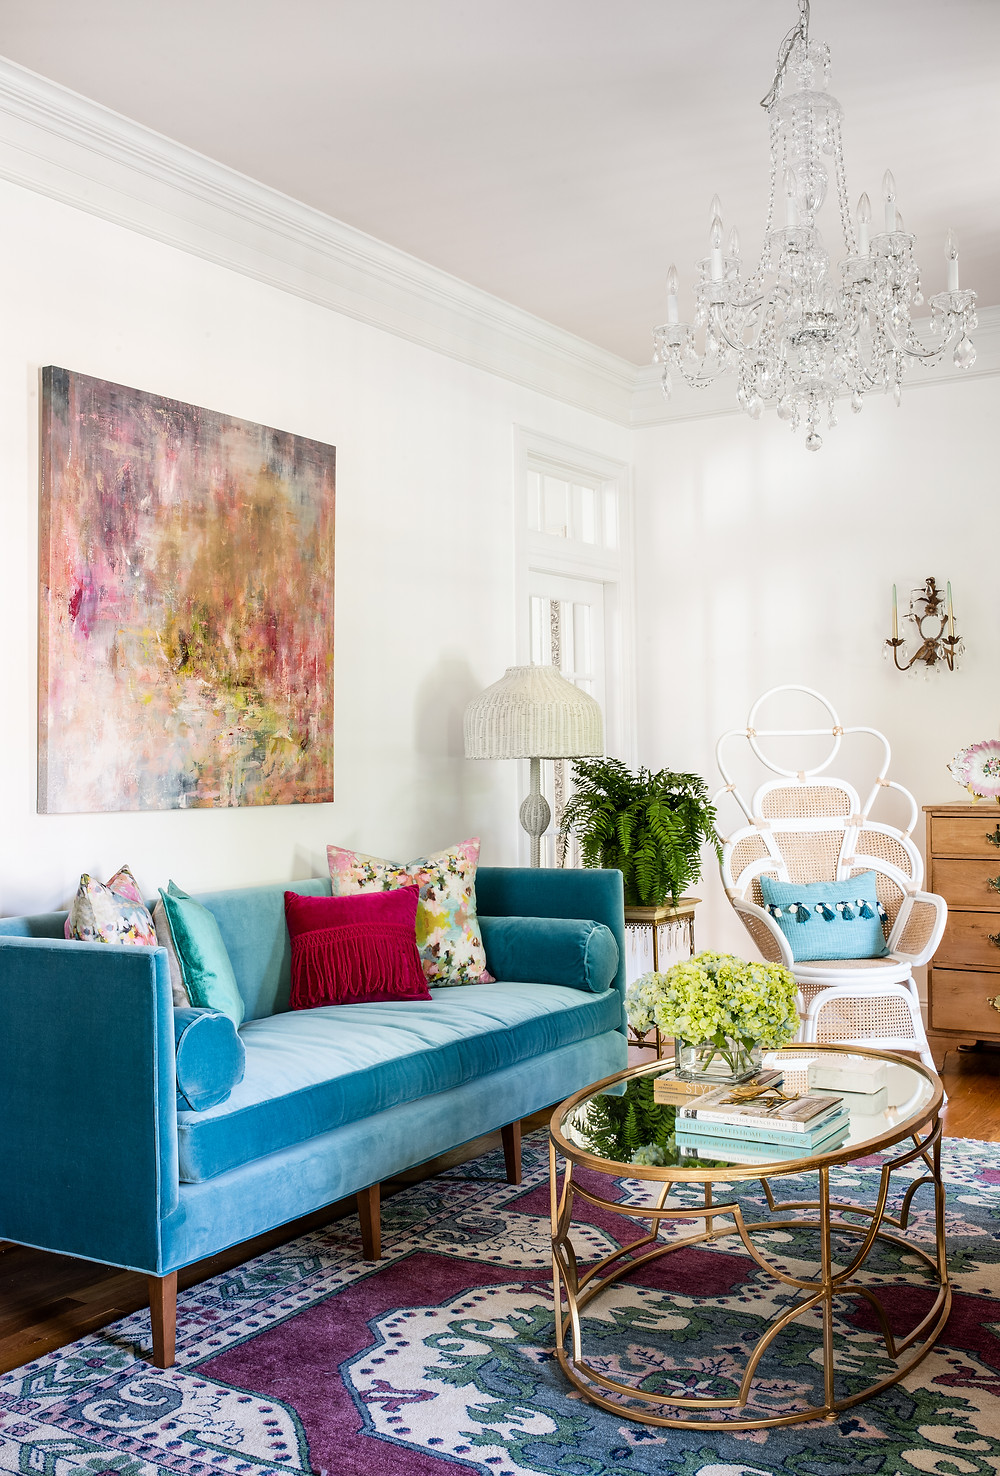 Mary Hannah Interiors Blog Elegant Retrohemian Chateau: Home Tour, Formal Living Room